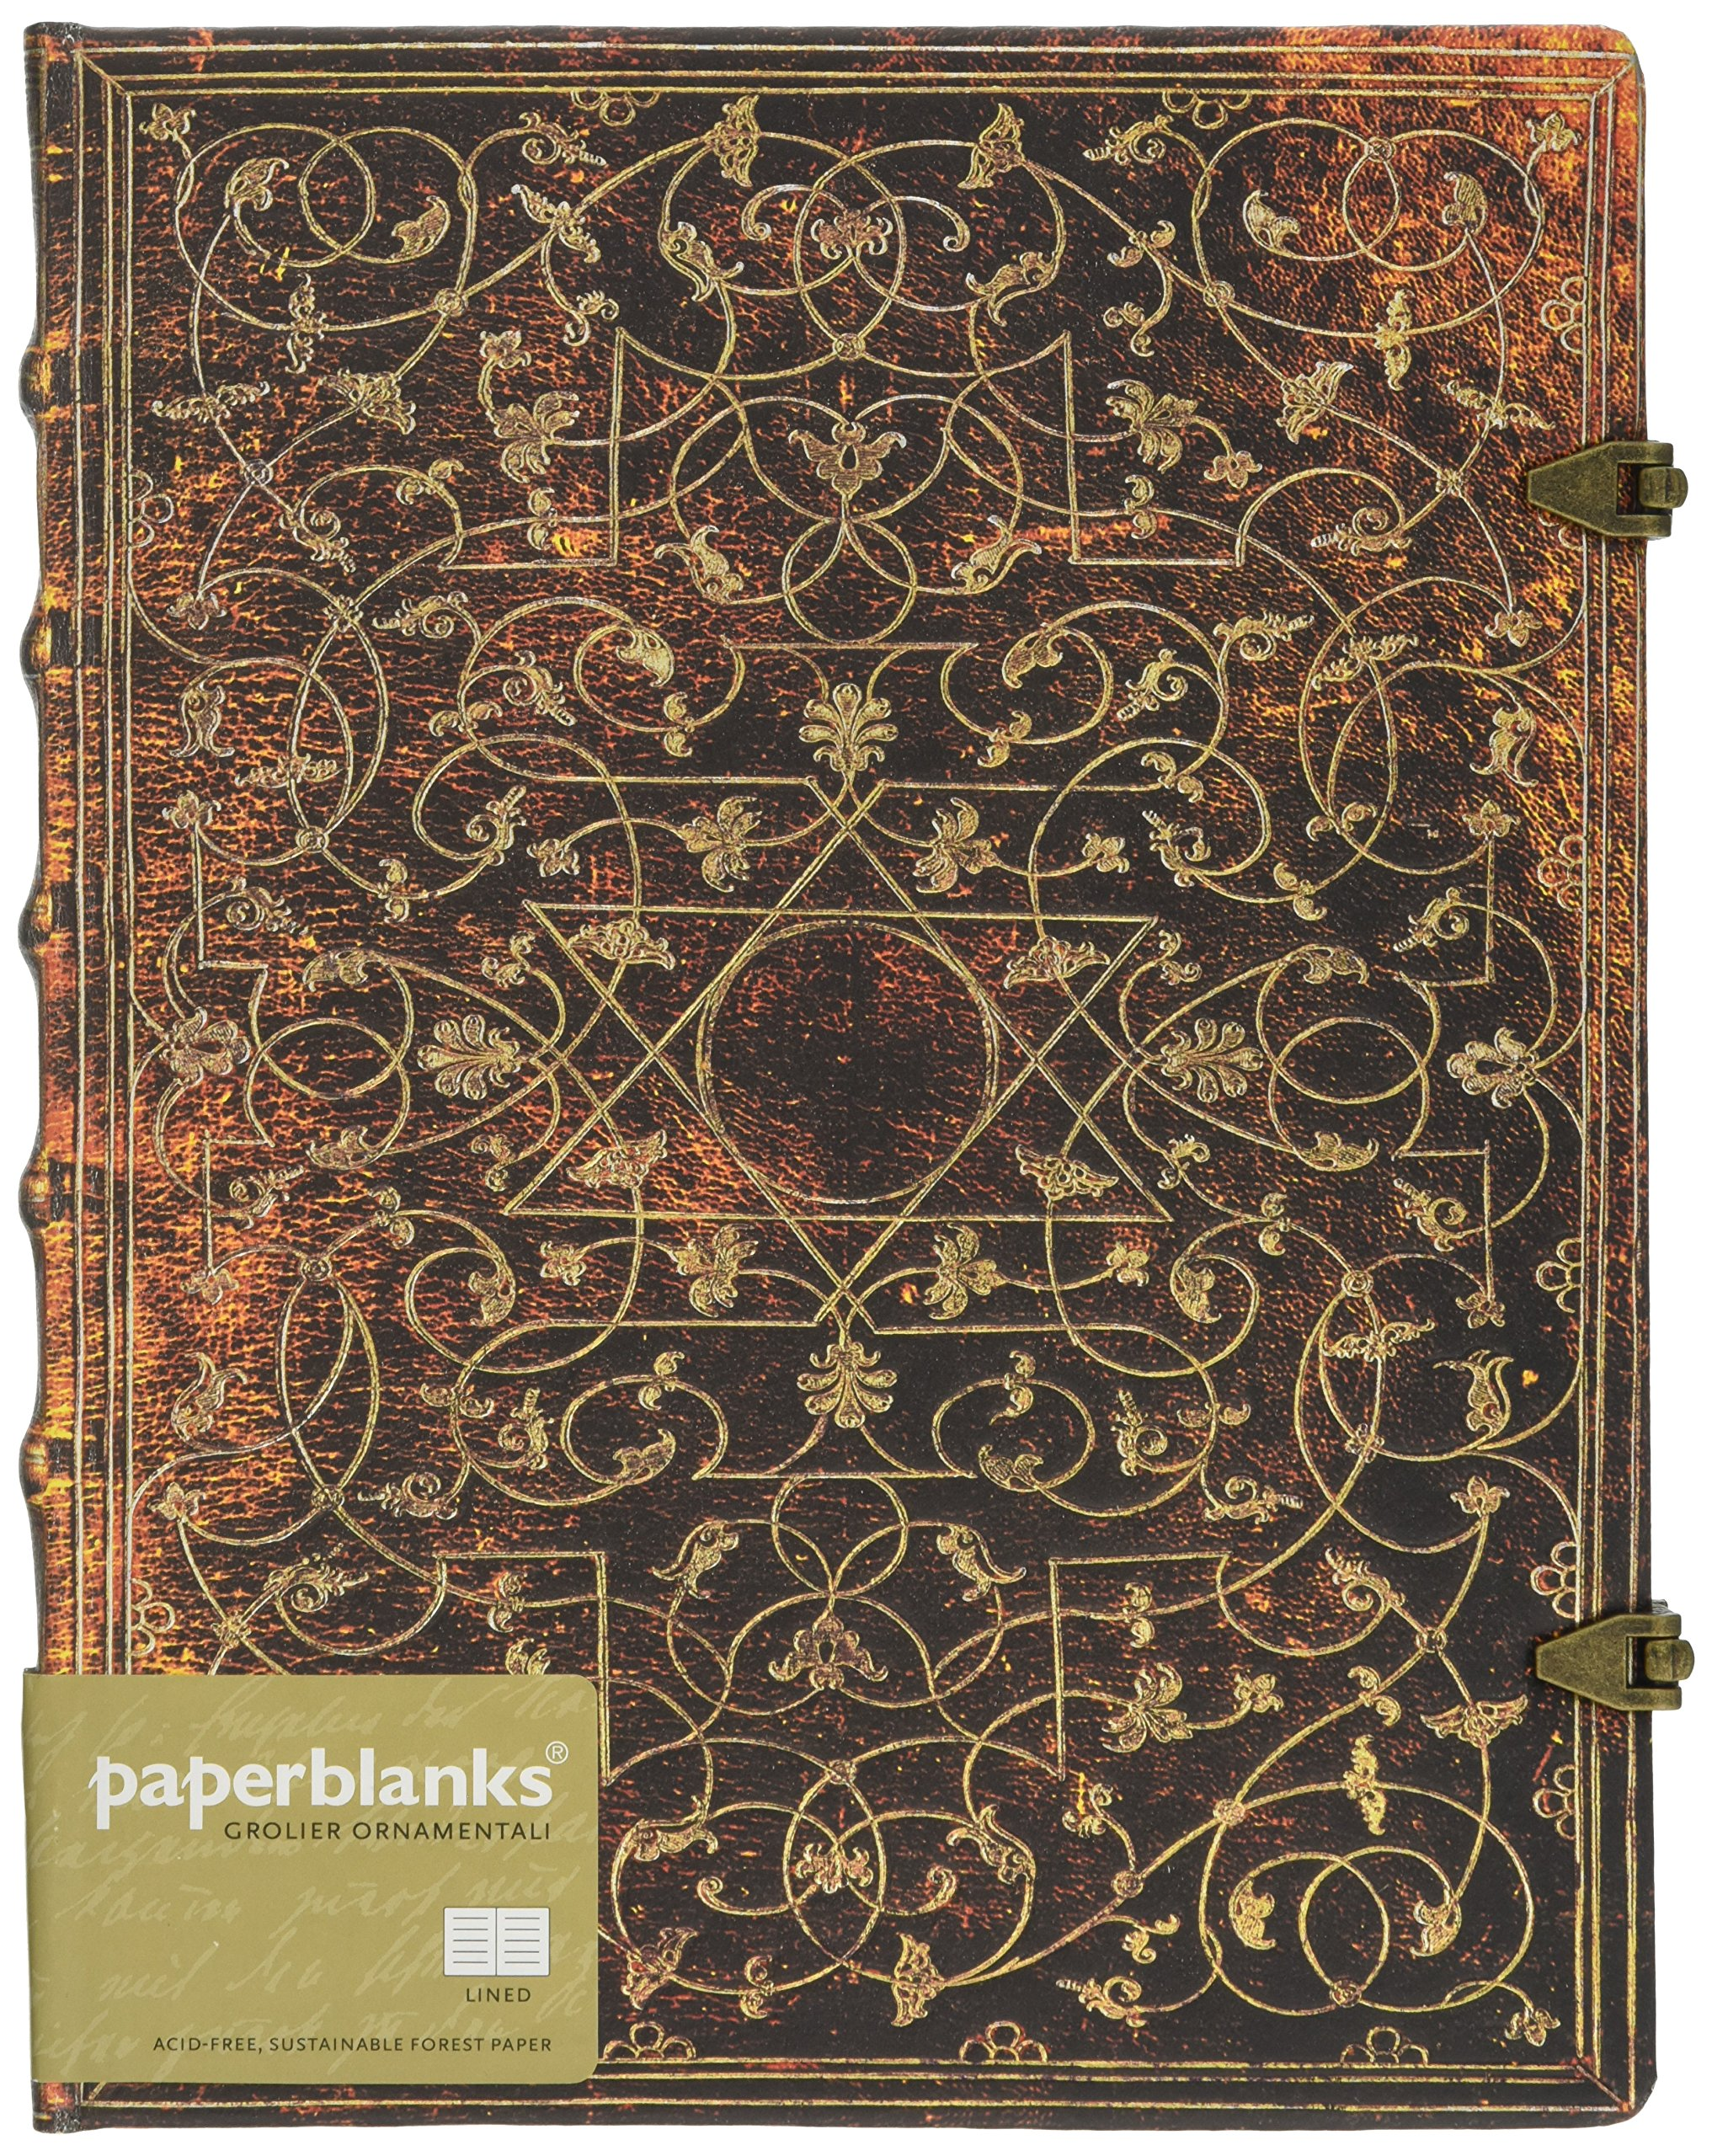 Grolier Ornamentali Ultra Lined Journal product image